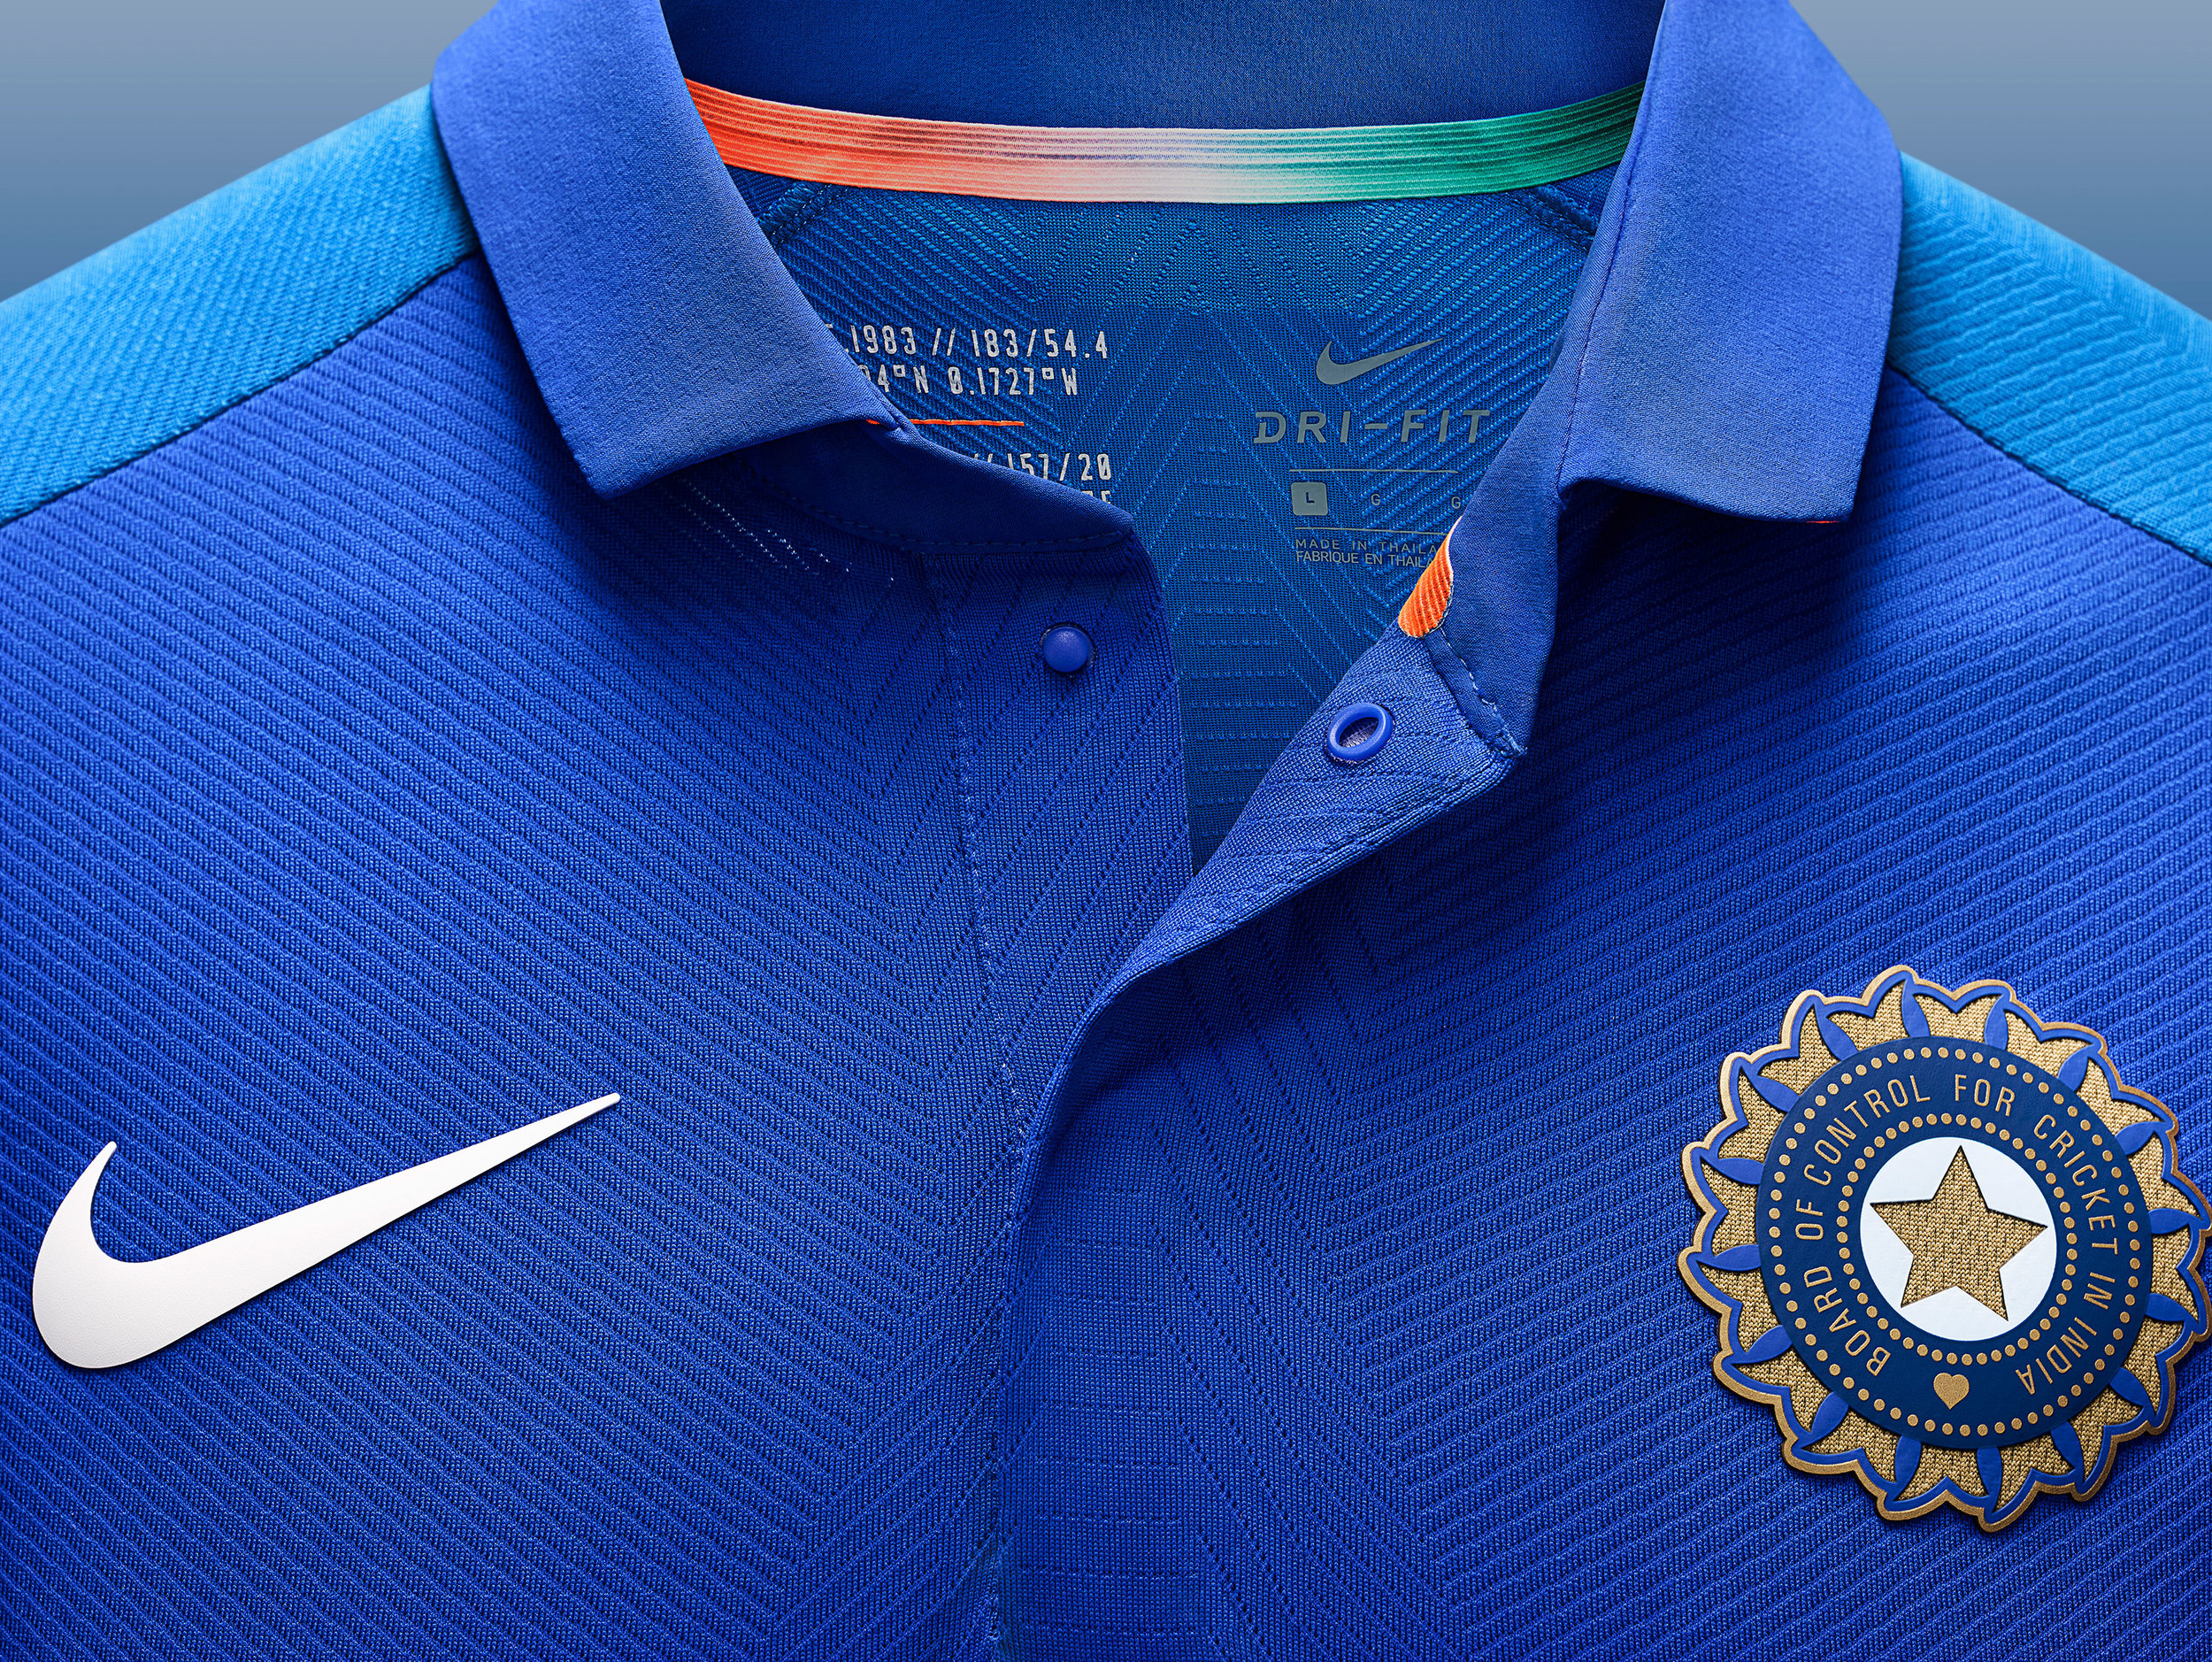 Nike_Cricket_IndiaNationalTeamKits_2019_56751_386869_r02_56751_379132_NIKE_APLA_SP19_Cricket_MensGamedayODIMatchTop_CollarButtons_Detail_Base_HR_original.jpg